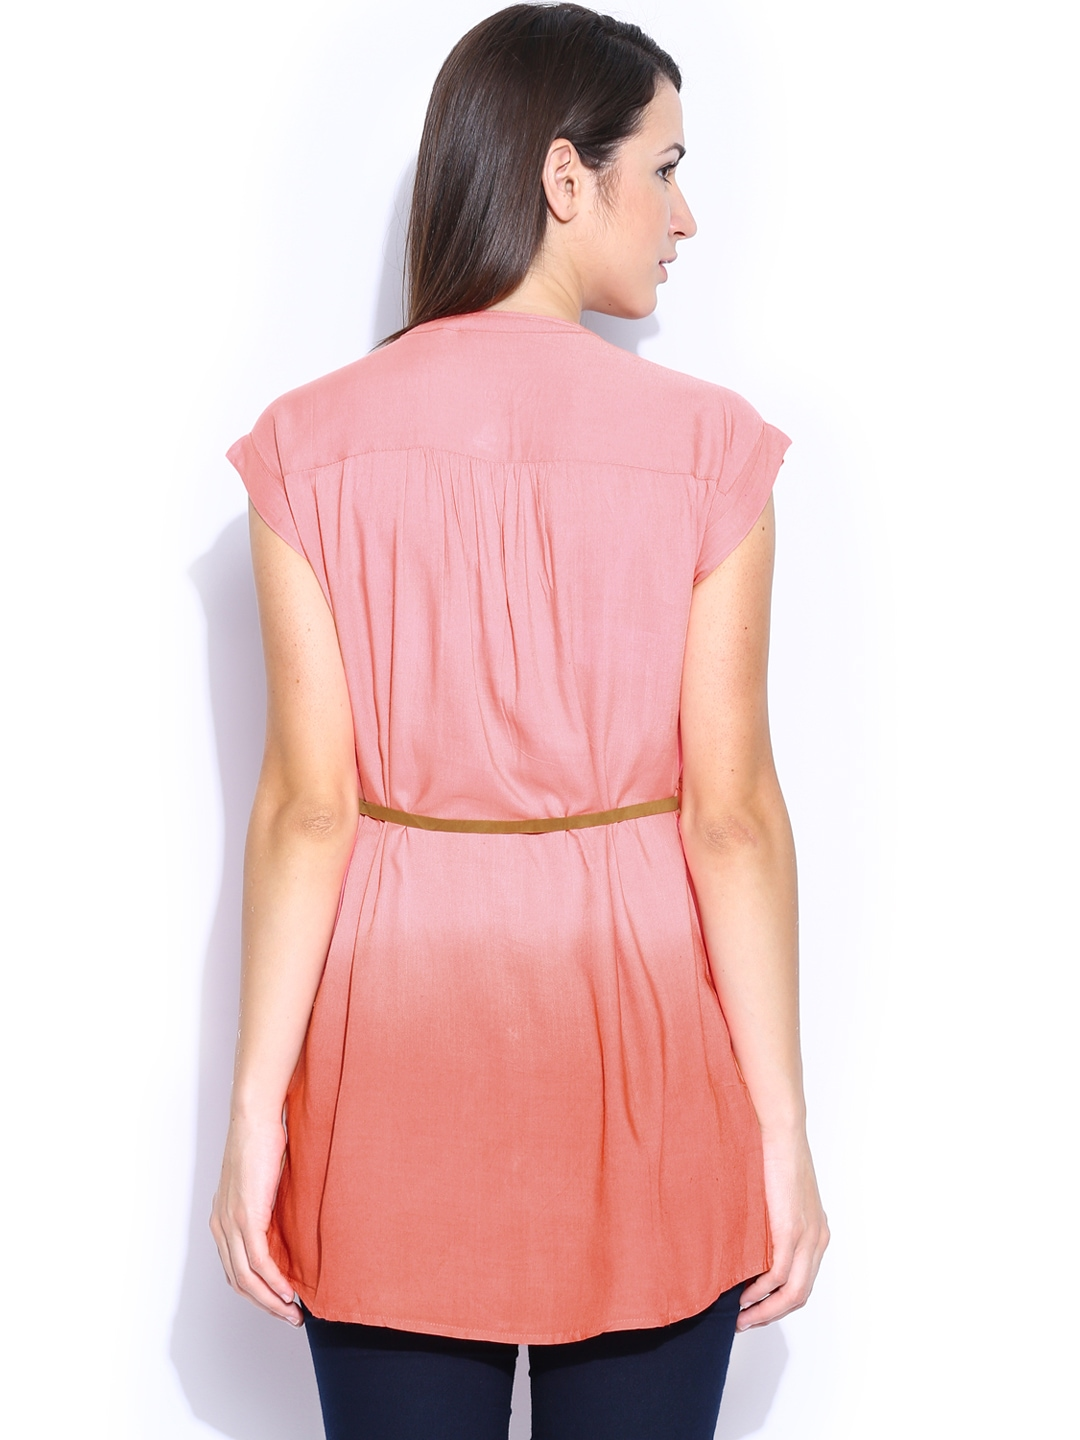 Myntra people women pink ombre shirt 707245 buy myntra for Shirts online shopping lowest price